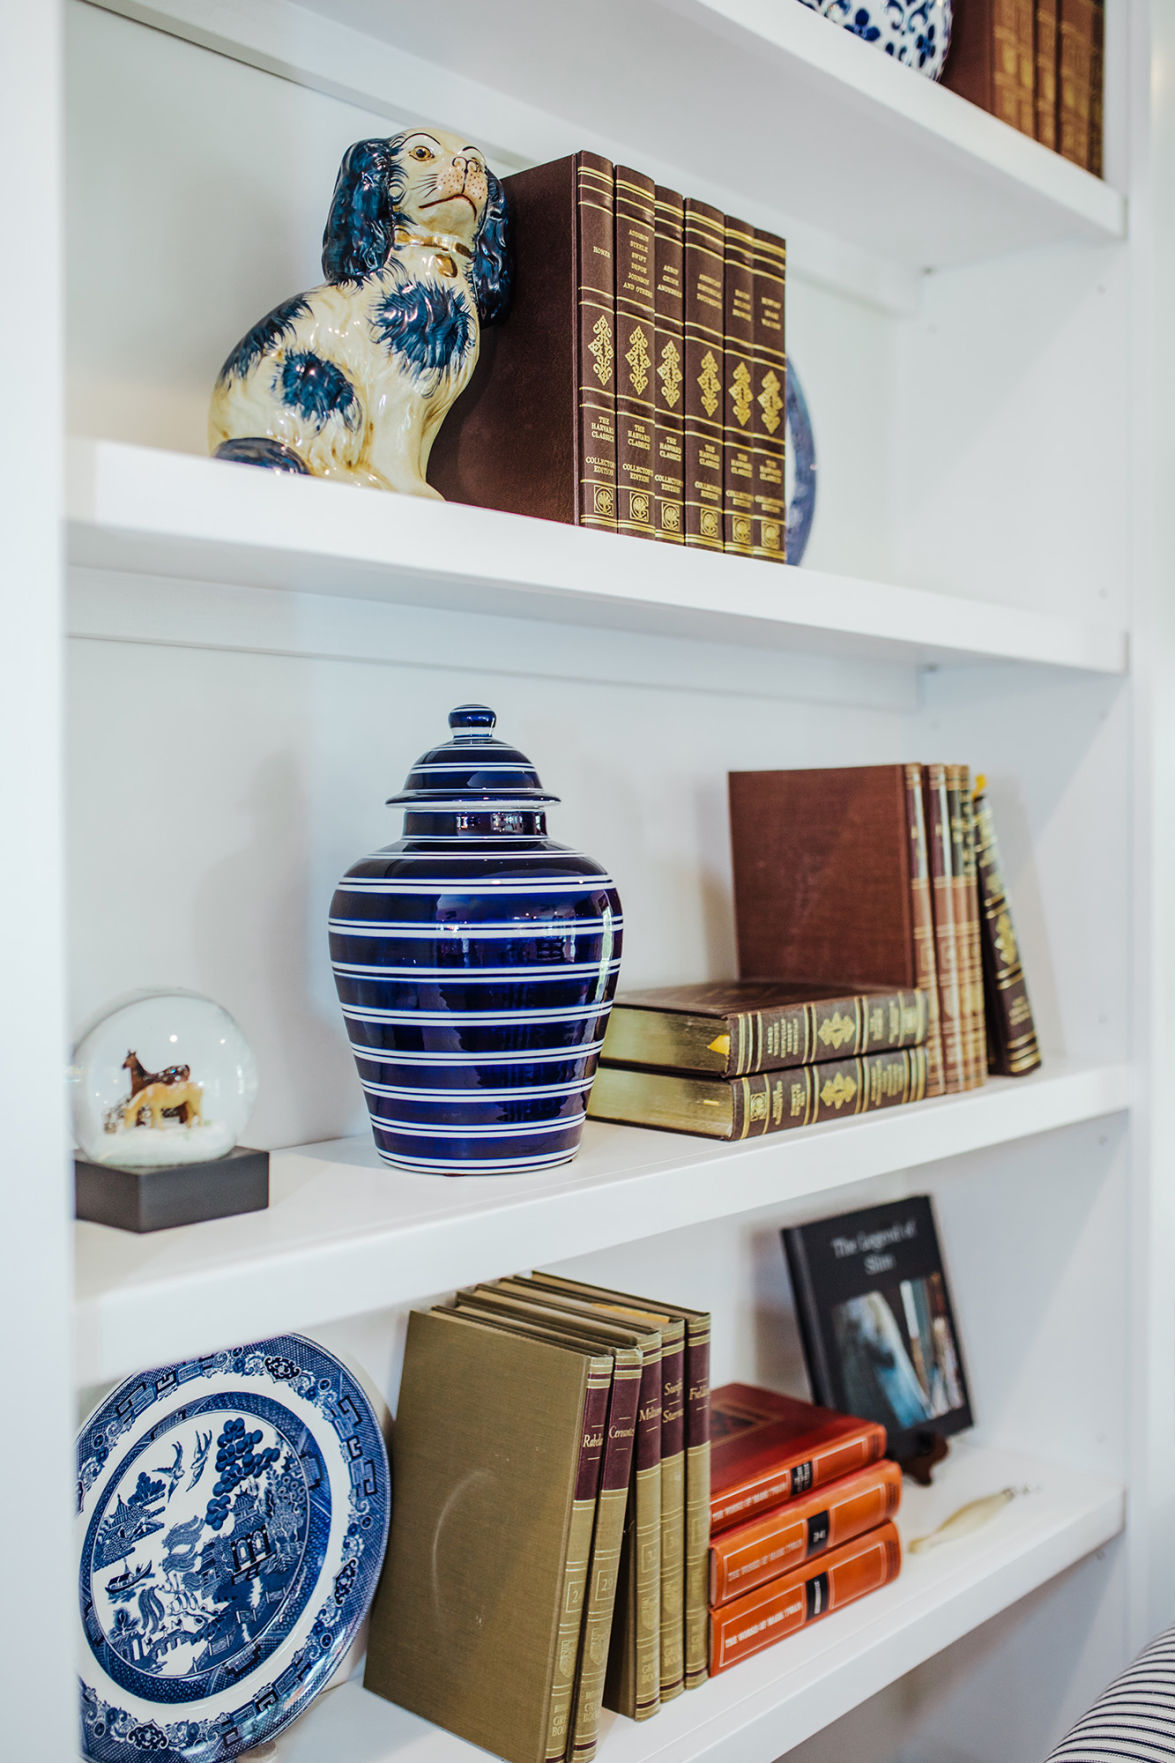 Make your shelf content personal